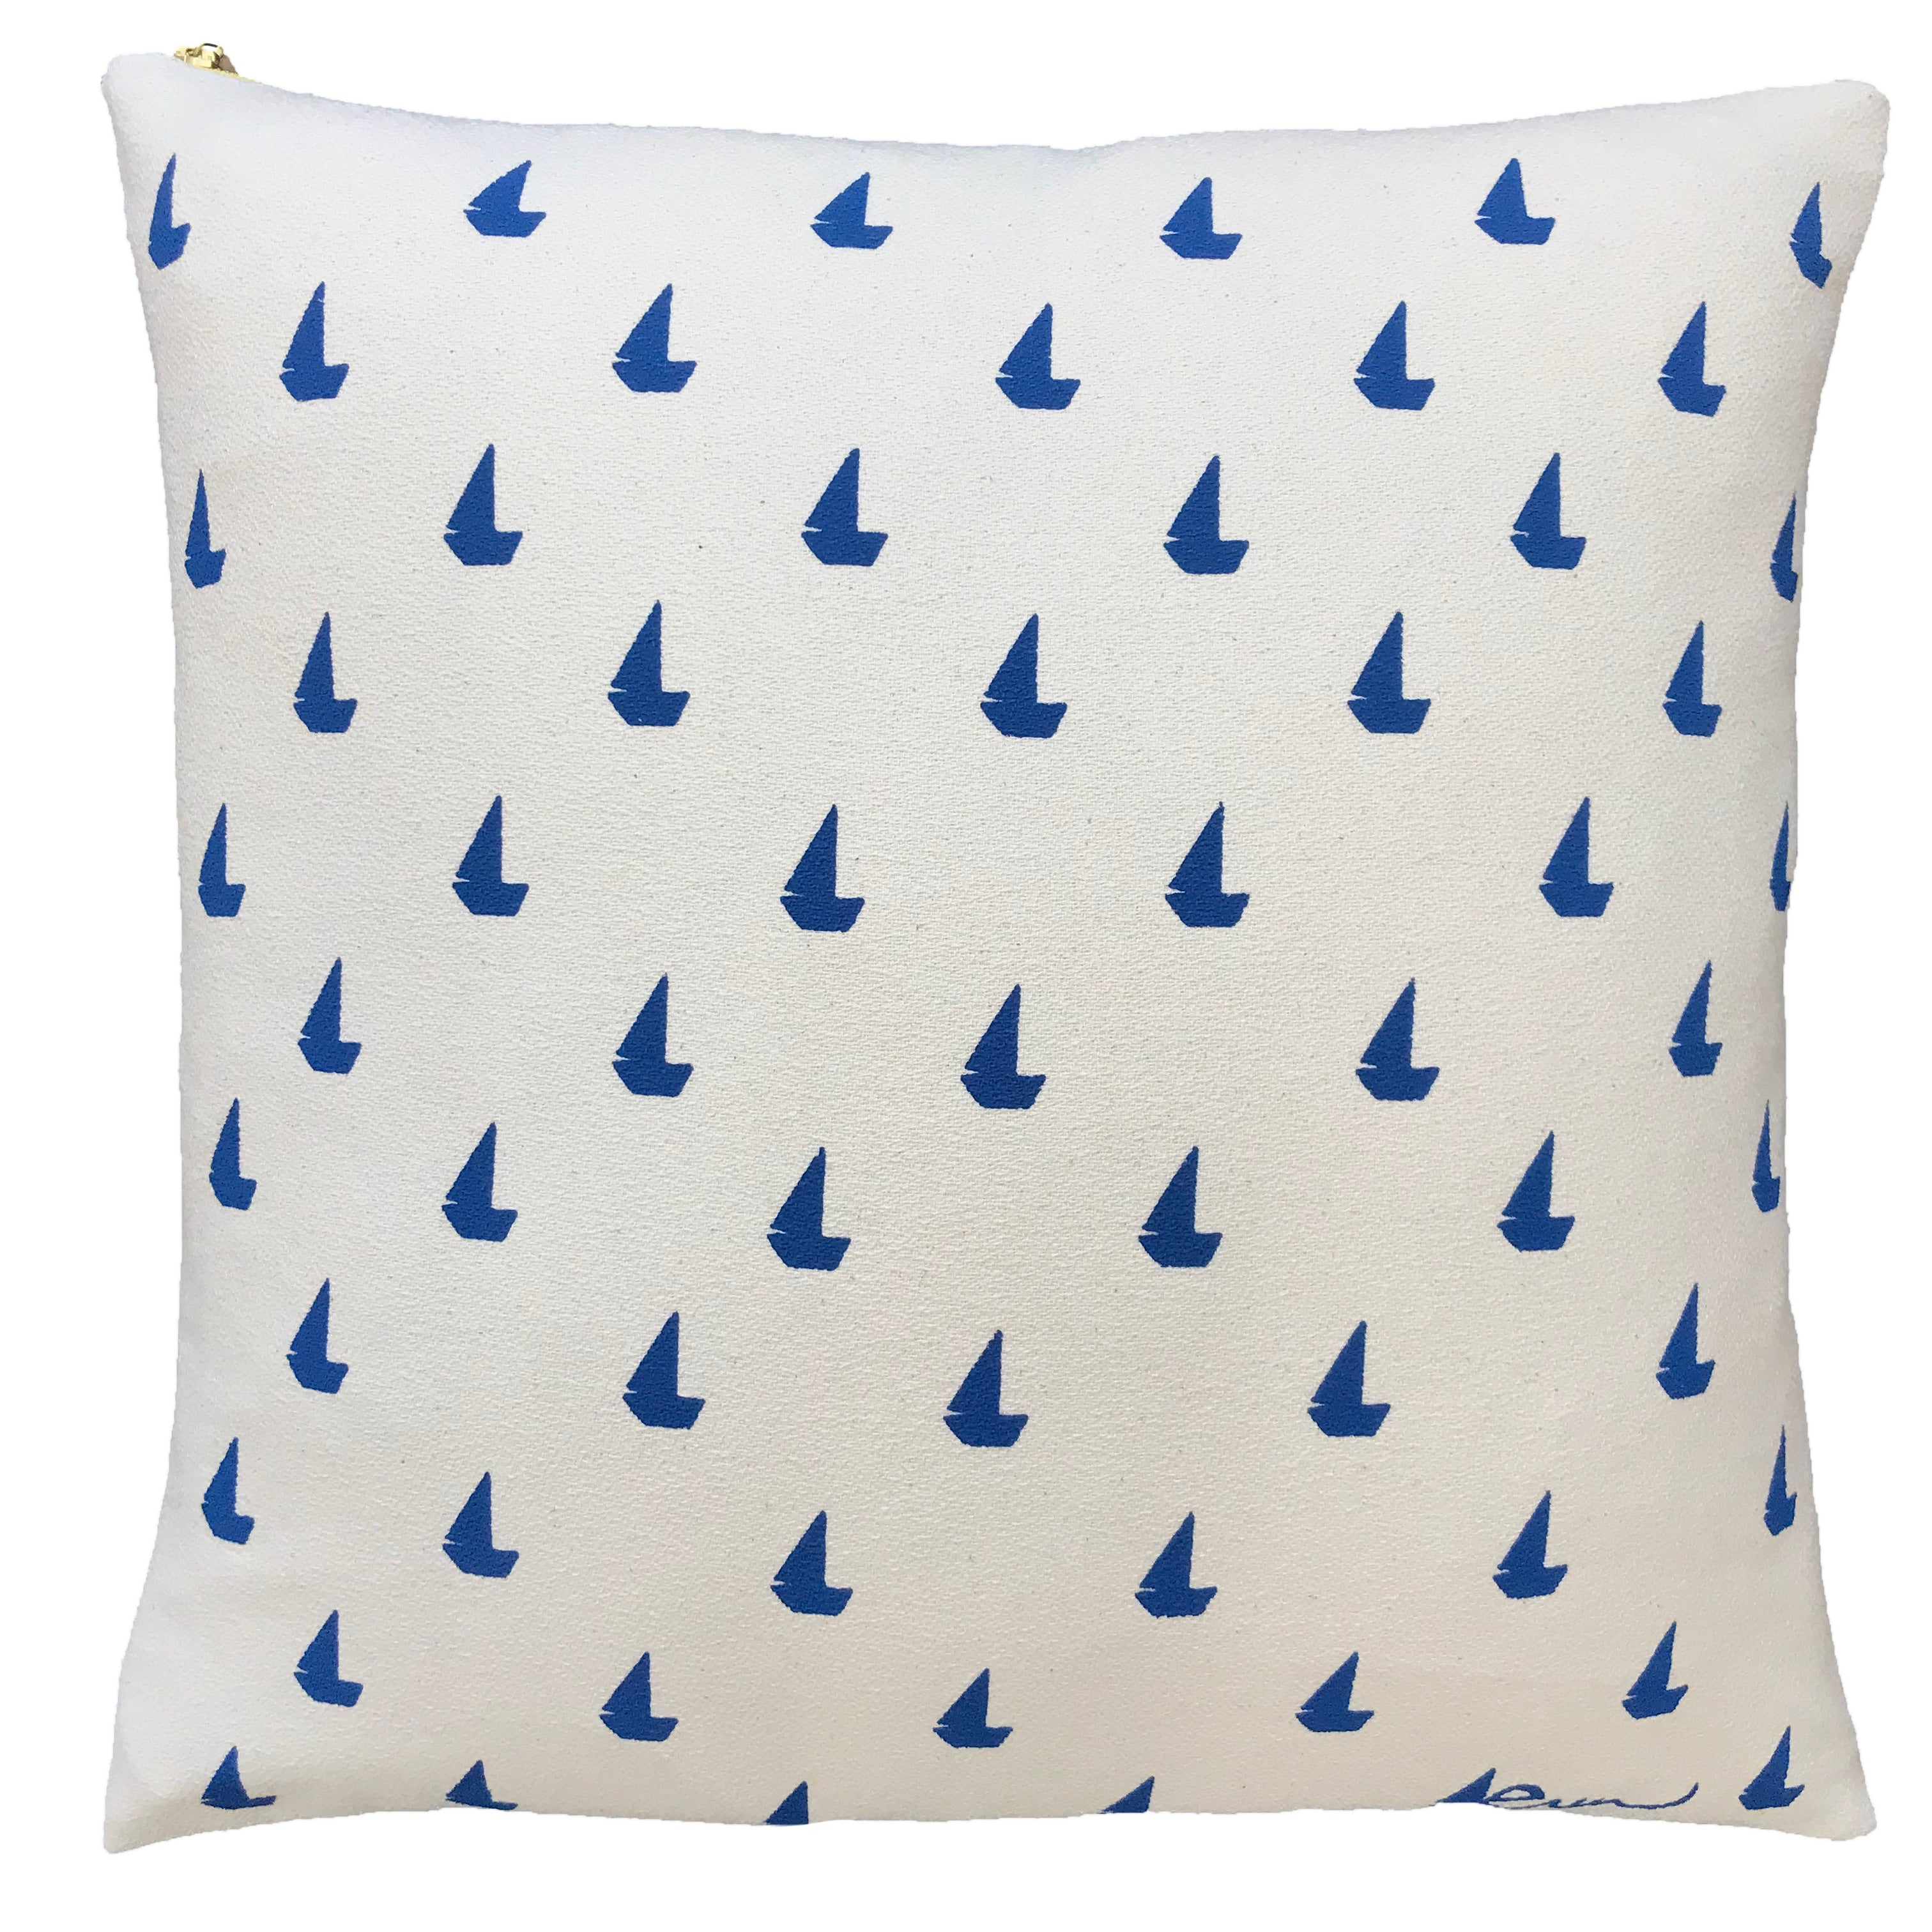 SHIPS NOW! ROYAL SAILBOATS PILLOW COVER